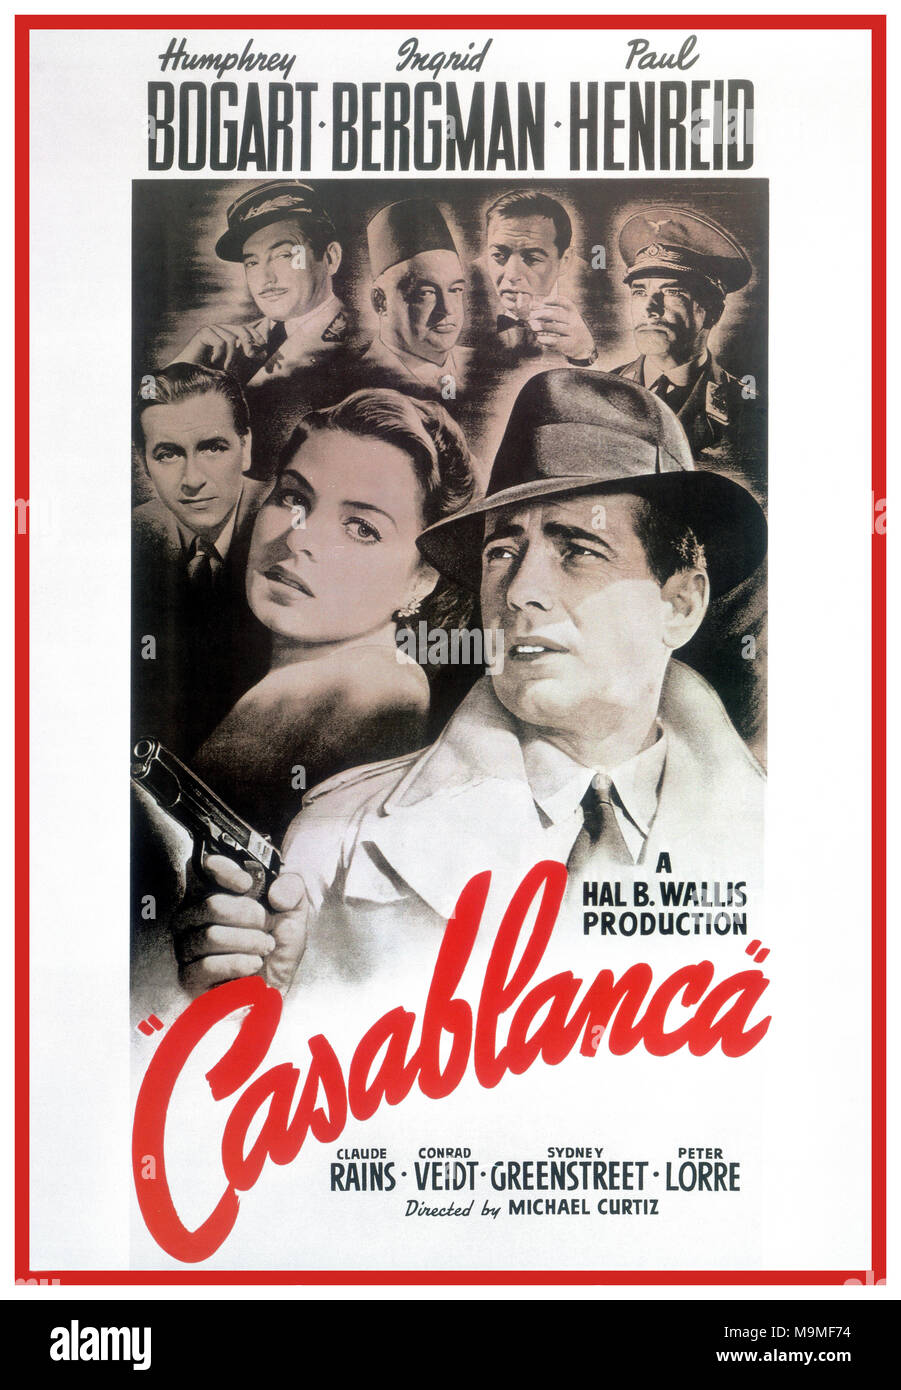 1940's Vintage Film Movie Poster Casablanca a 1942 American romantic drama film directed by Michael Curtiz. The film stars Humphrey Bogart, Ingrid Bergman, and Paul Henreid; it also features Claude Rains, Conrad Veidt, Sydney Greenstreet, Peter Lorre, and Dooley Wilson. Set during  World War II, it focuses on an American expatriate who must choose between his love for a woman and helping her and her husband, a Czech Resistance leader, escape from the Vichy-controlled city of Casablanca to continue his fight against the Nazis - Stock Image